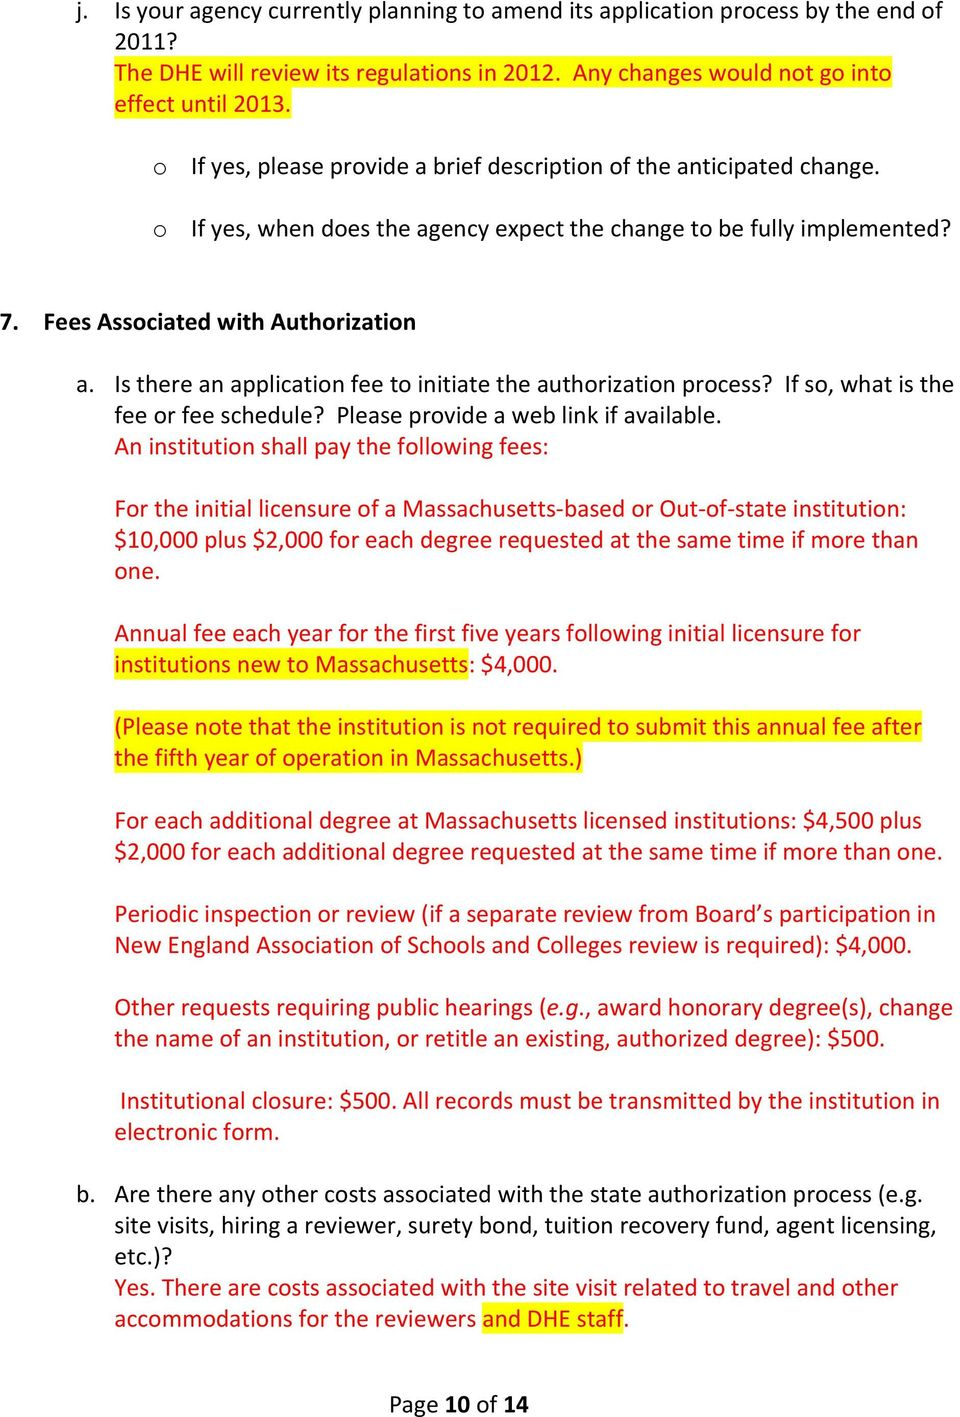 Is there an application fee to initiate the authorization process? If so, what is the fee or fee schedule? Please provide a web link if available.